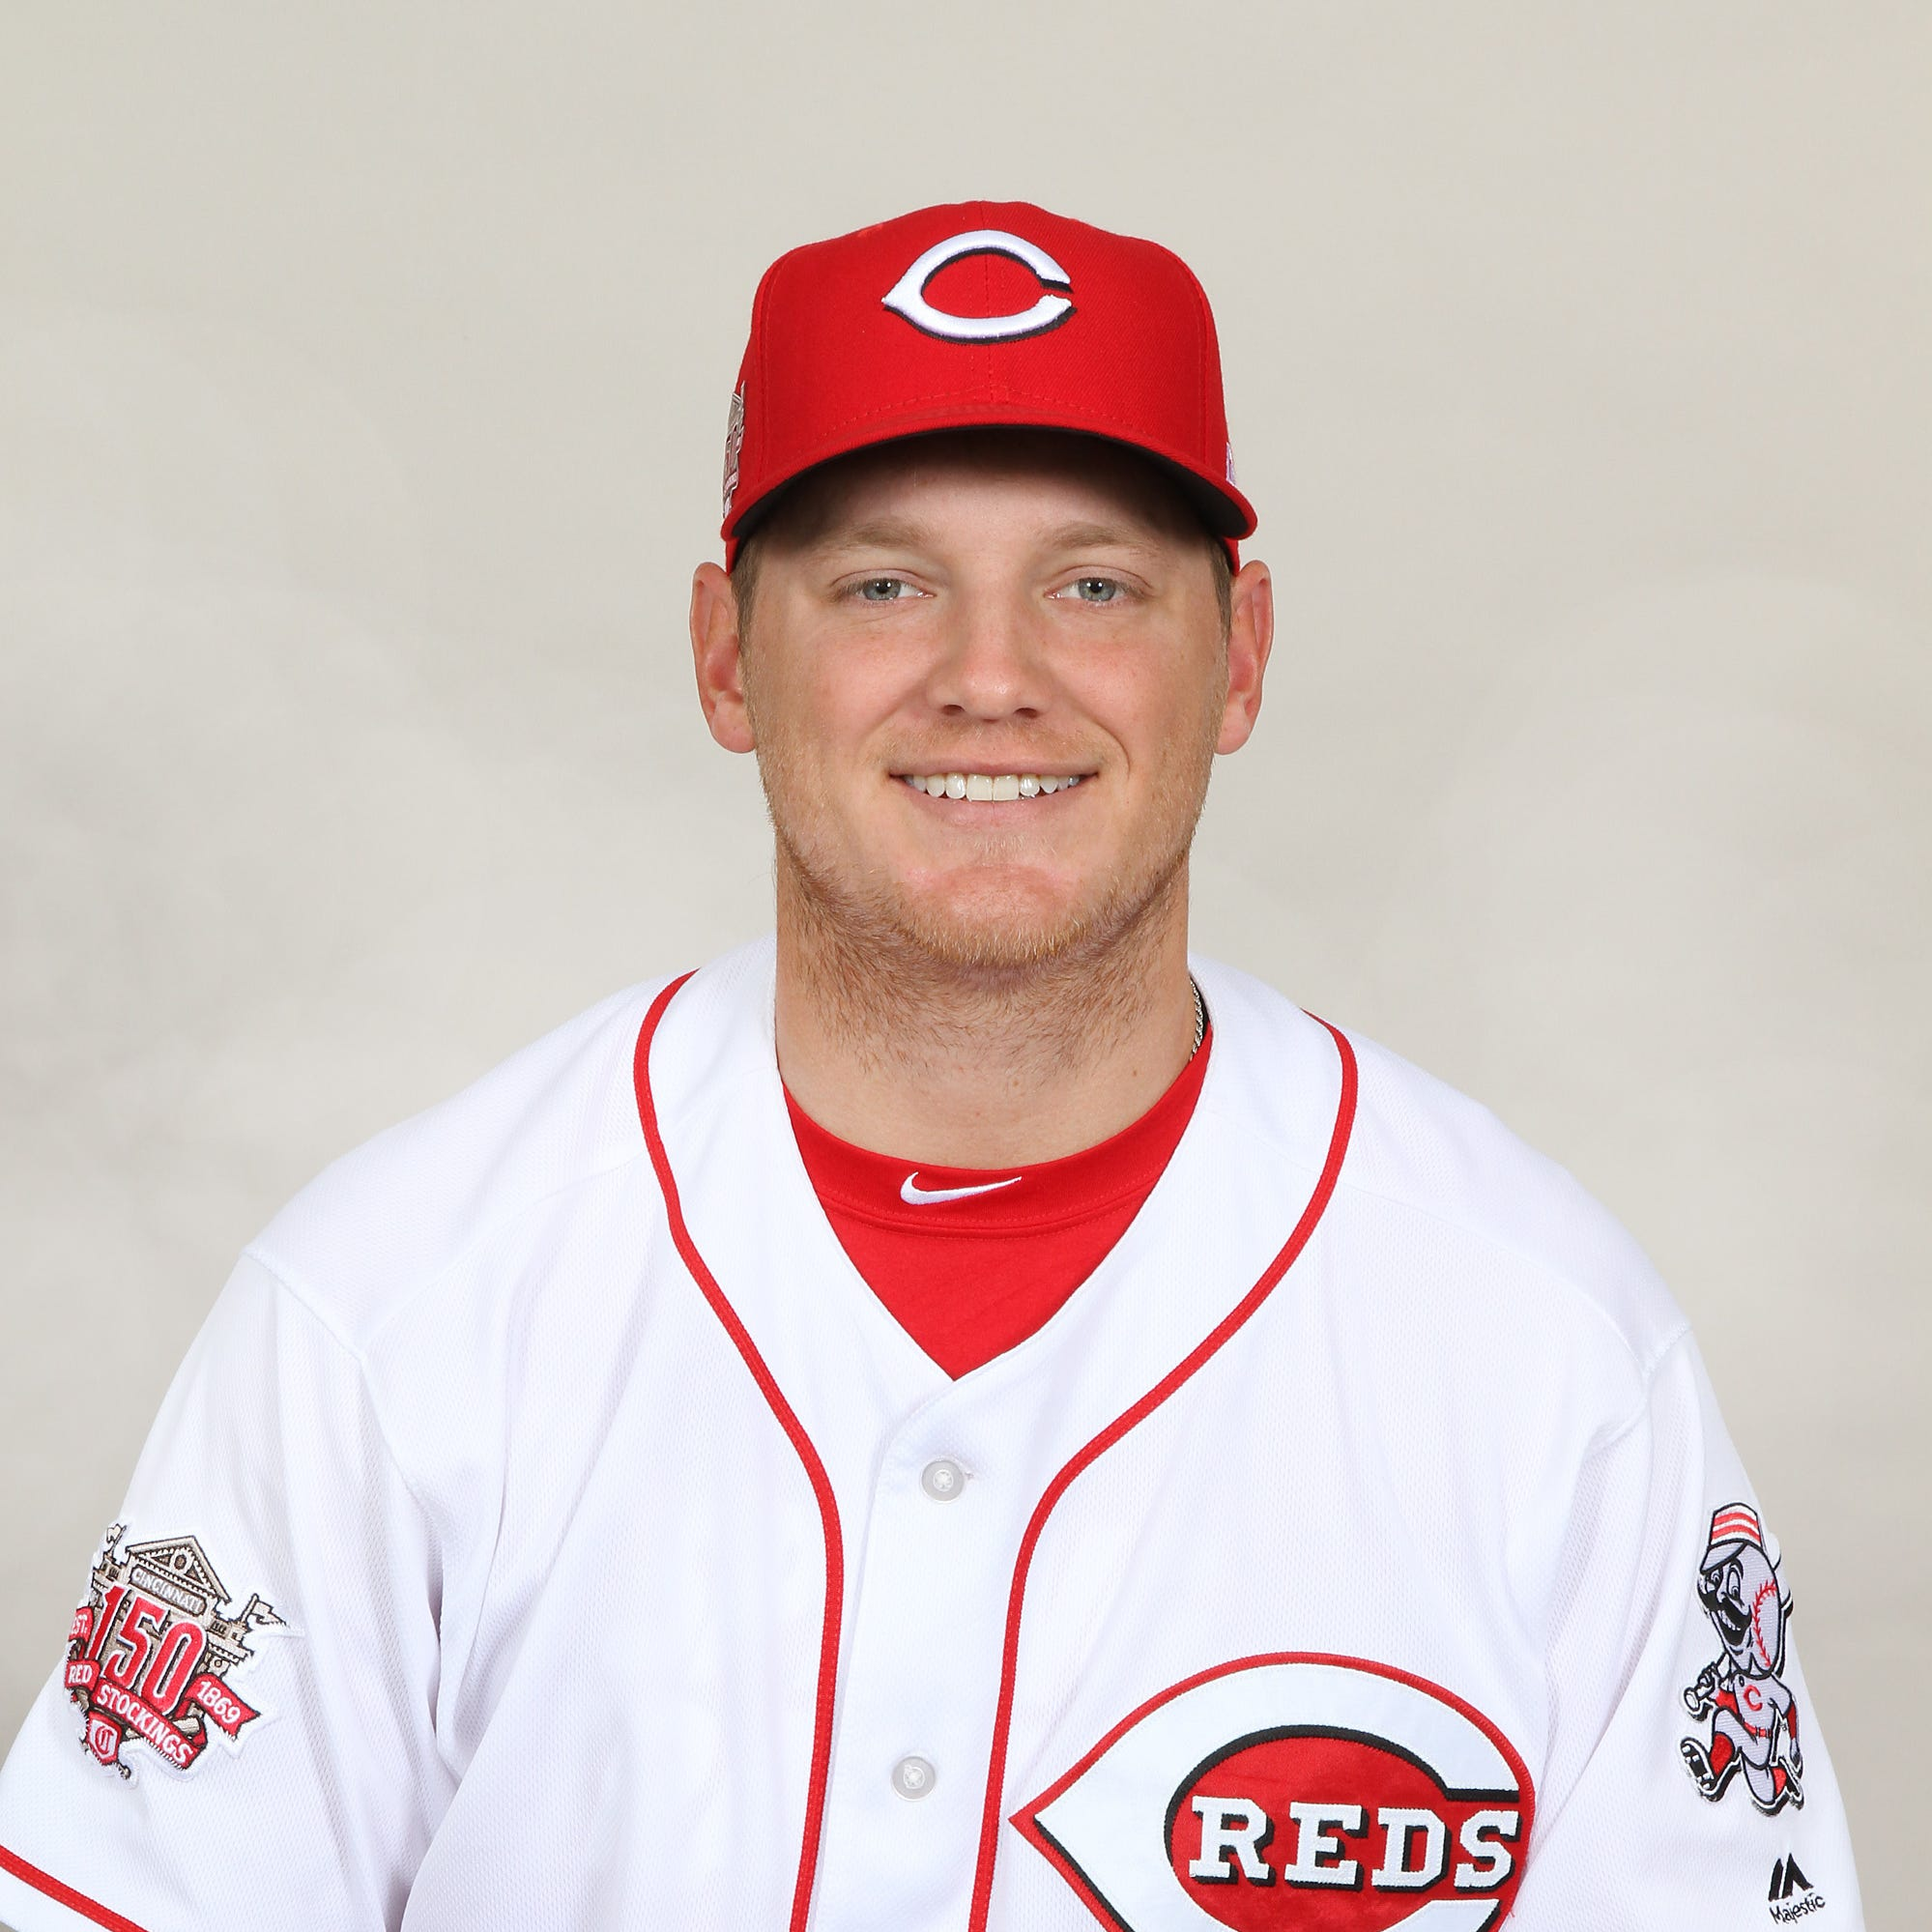 Cincinnati Reds call up hot-hitting Josh VanMeter from Triple-A, option Cody Reed